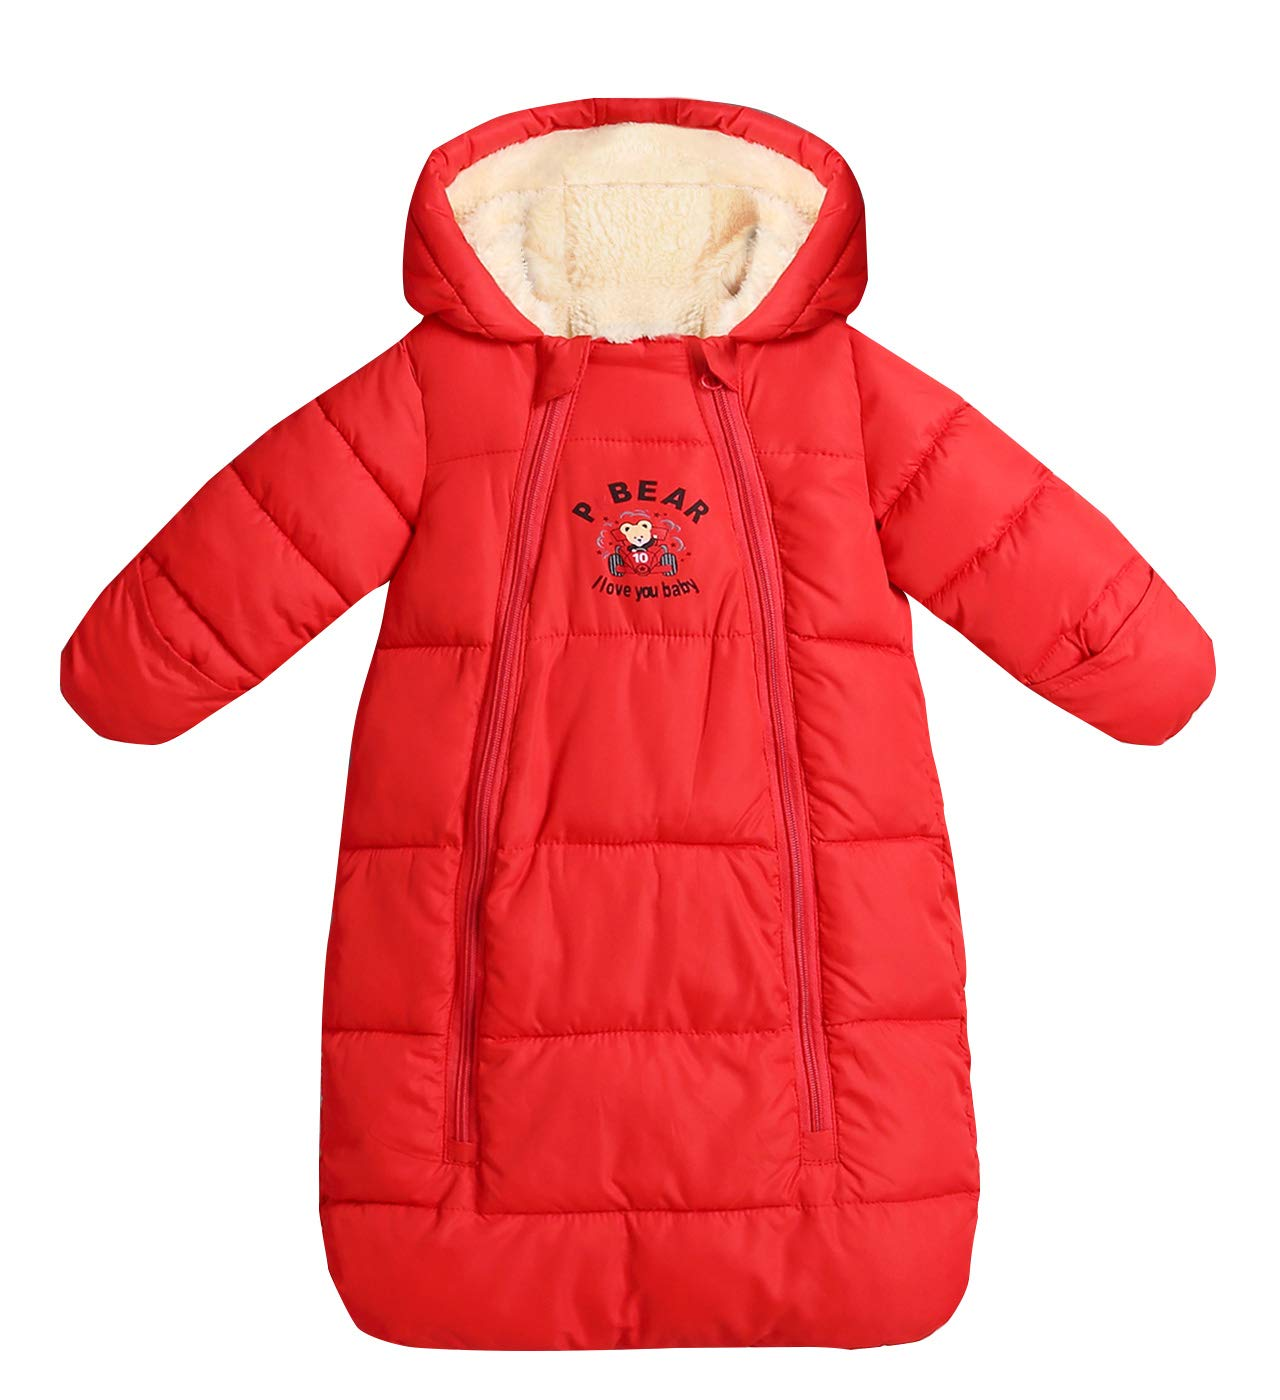 Baby Wearable Blanket Long Sleeve Snowsuit Hooded Fleece Sleeping Bag Thicken Loose Fit Snowsuit 6-18 Months Red by Aivtalk